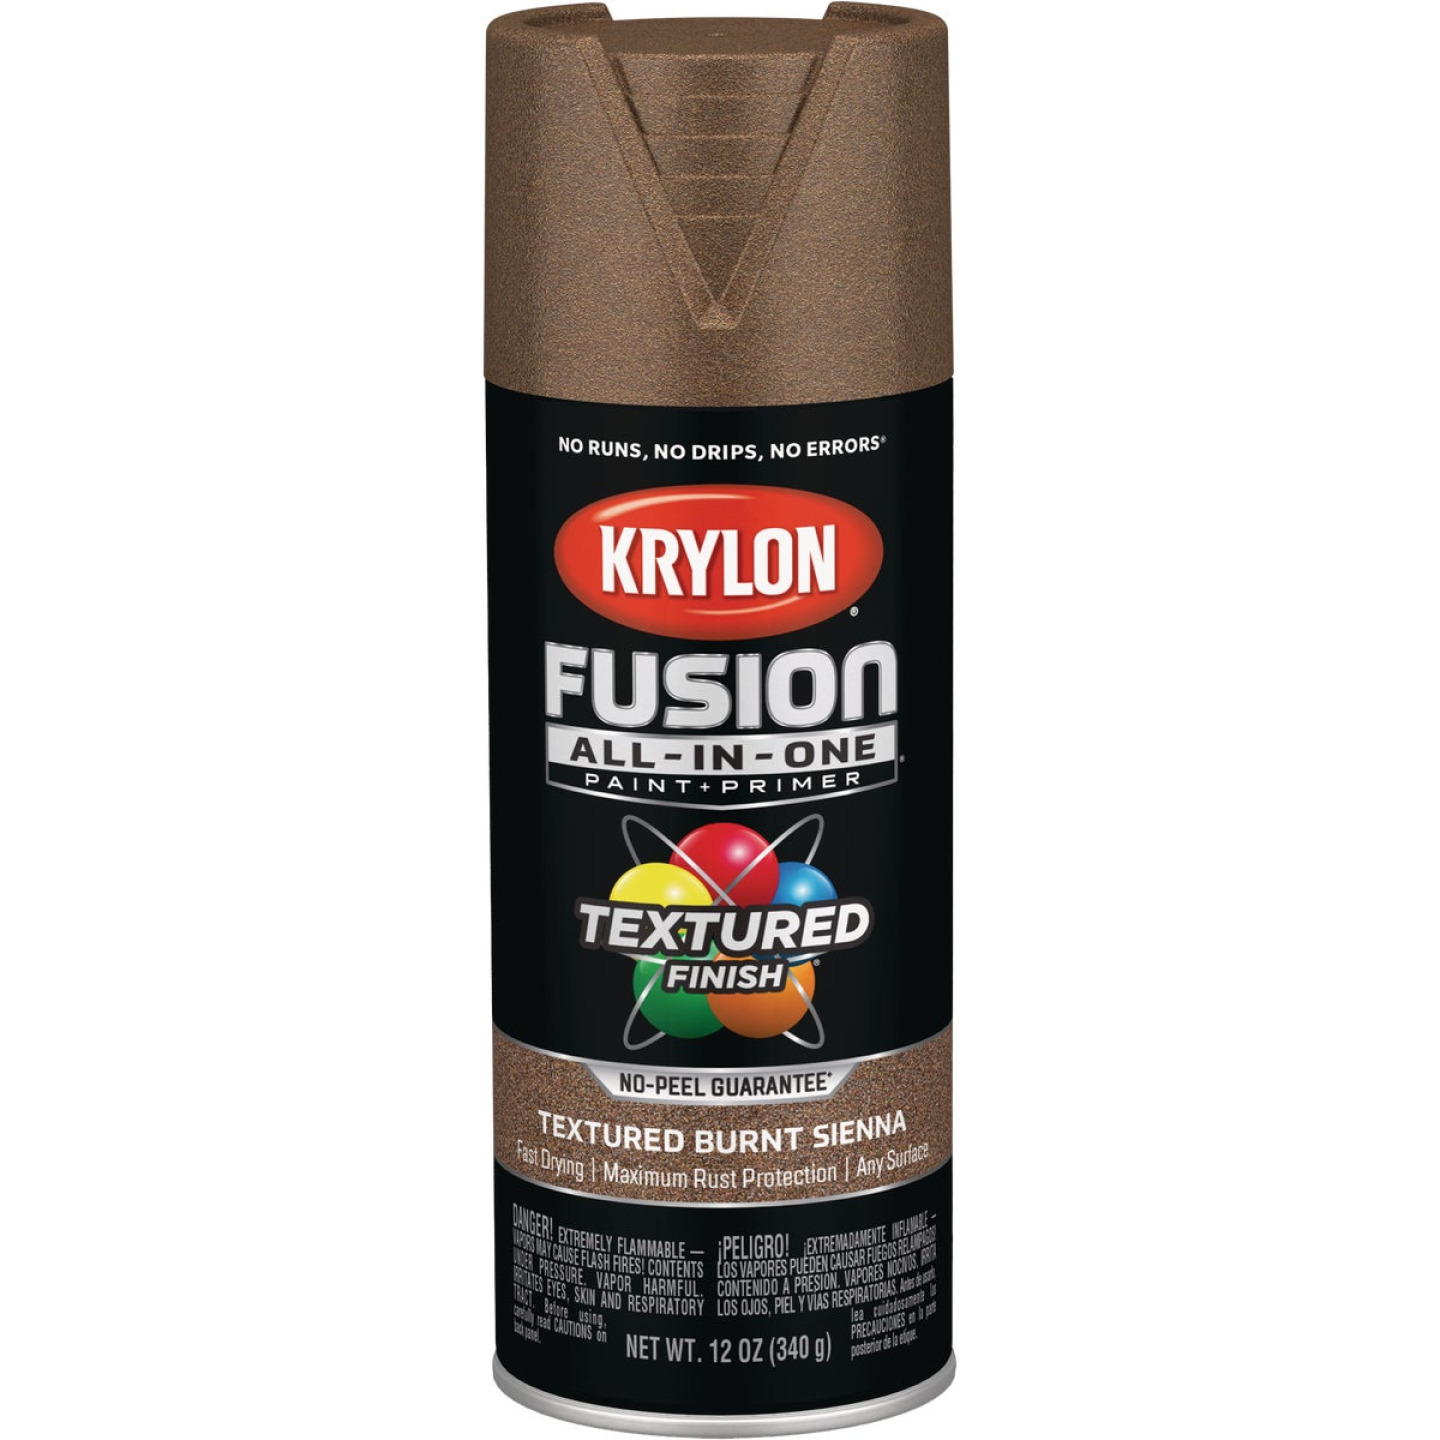 Krylon Fusion All-In-One Textured Spray Paint & Primer, Burnt Sienna Image 1